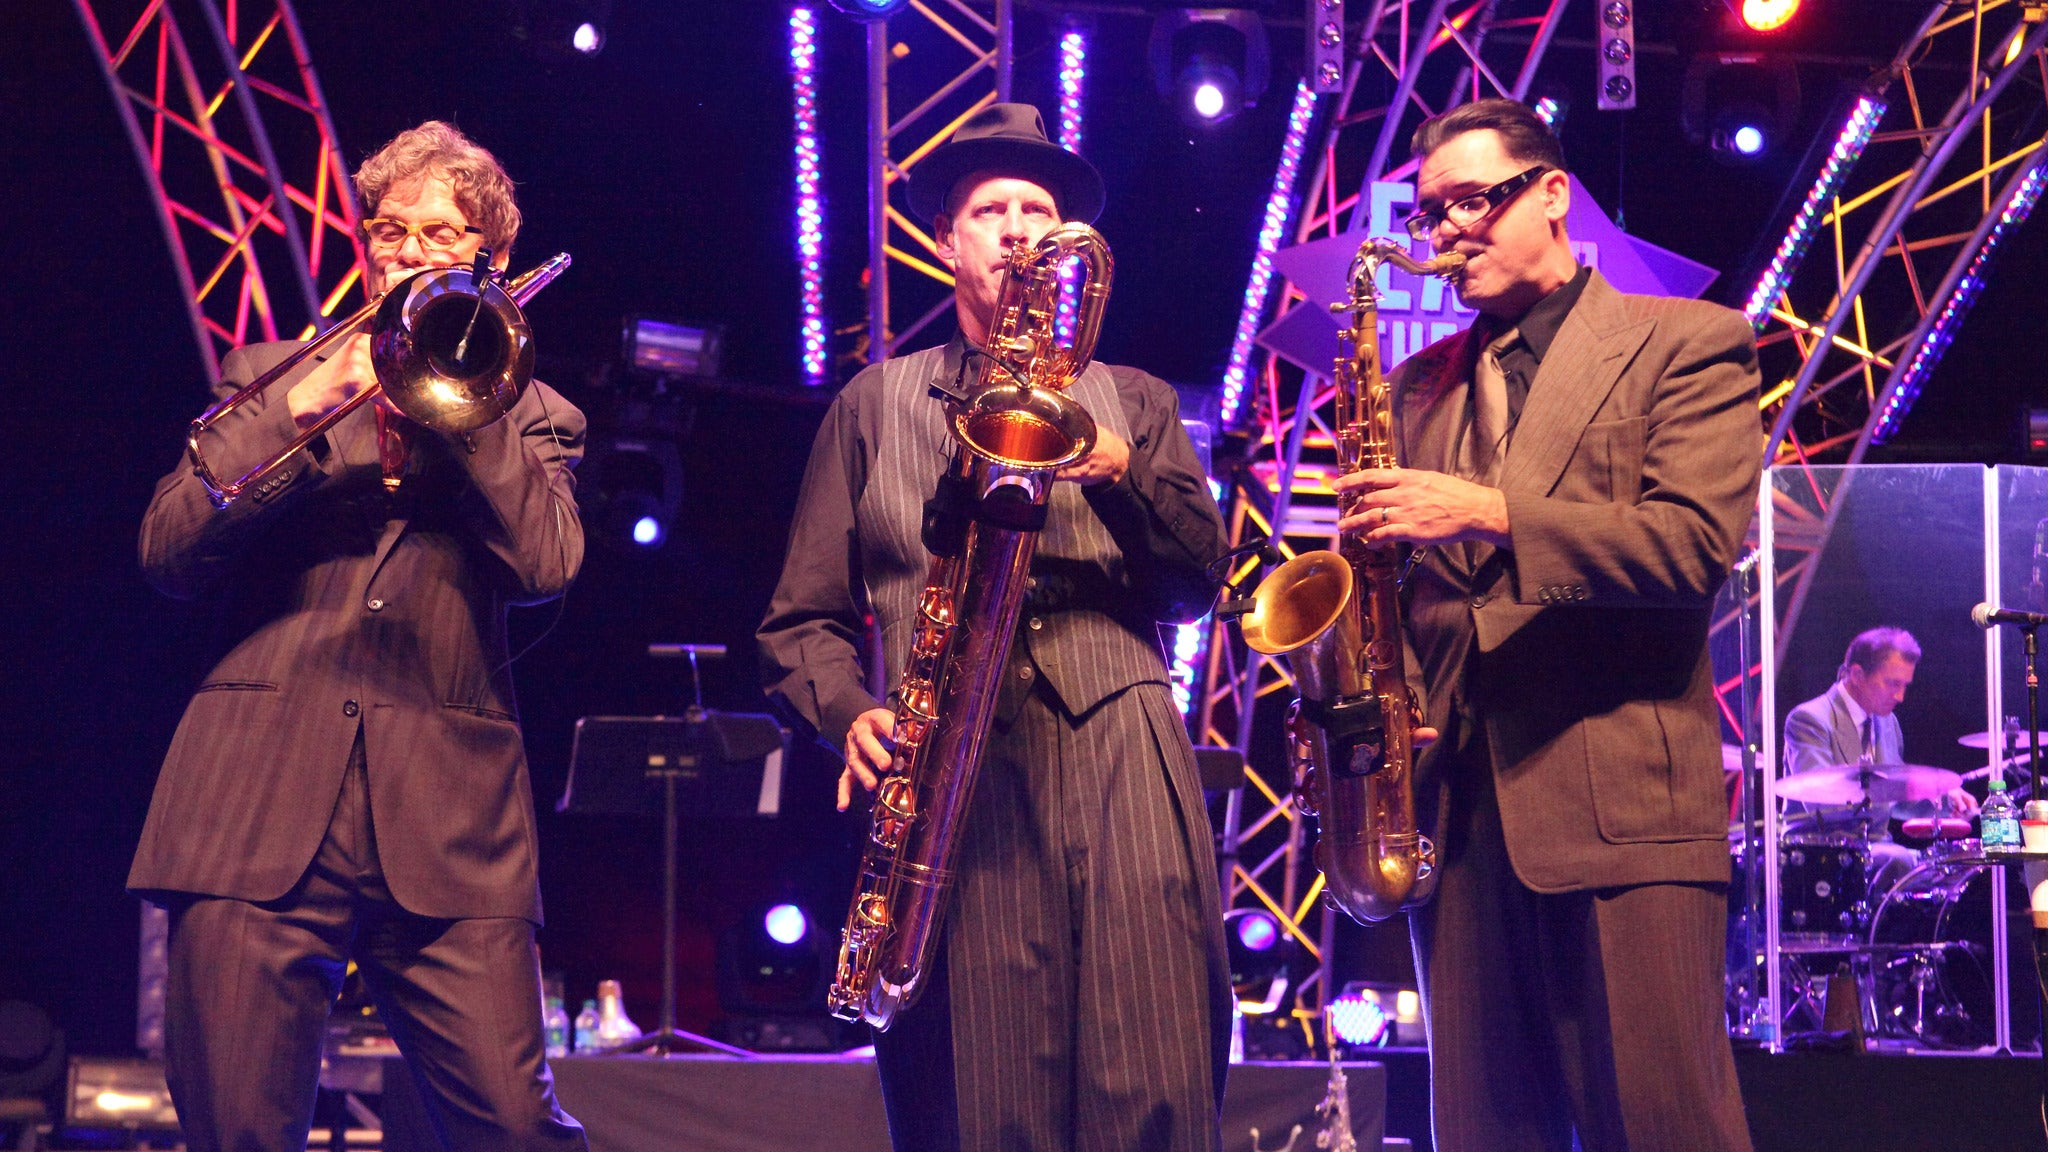 Civic Arts Plaza presents BIG BAD VOODOO DADDY